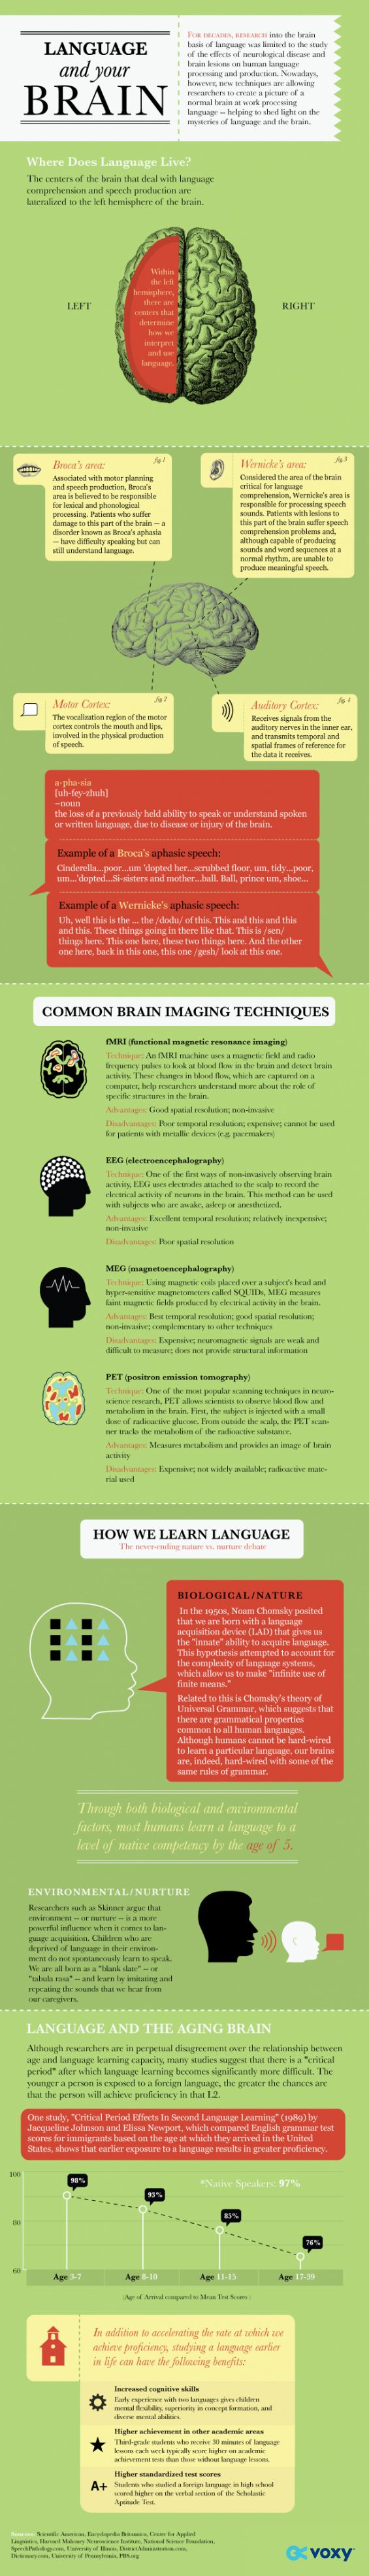 For centuries, researchers have studied the brain to find exactly where mechanisms for producing and interpreting language reside. Theories abound on howhumans acquire new languages and how our developing brains learn to process languages. We take a look at the mysteries of language and the brain in the infographic below. Note to teachers: Continue reading …